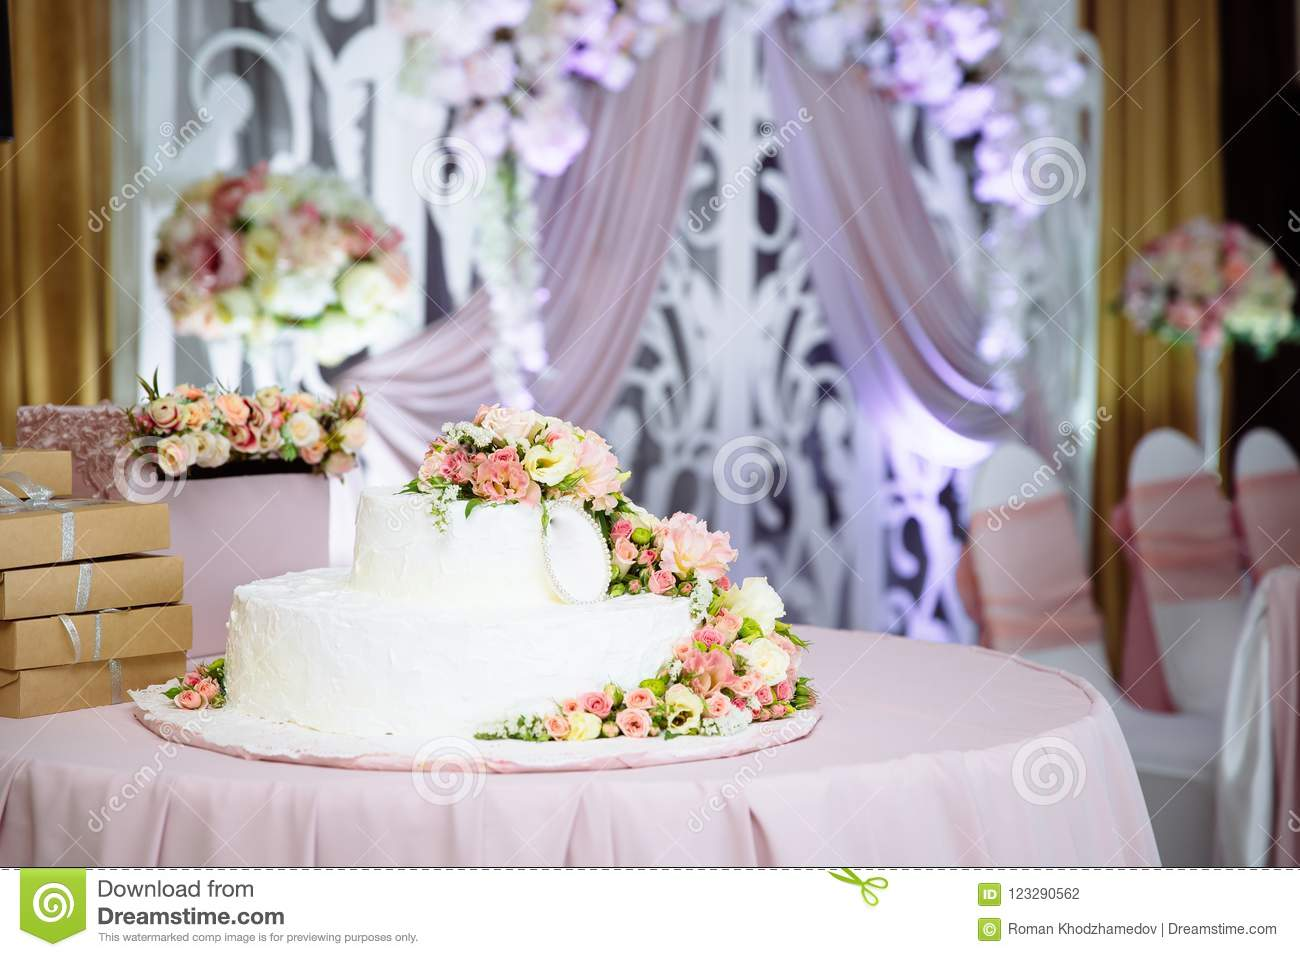 A Large White Wedding Cake On The Table Decorated With Fresh